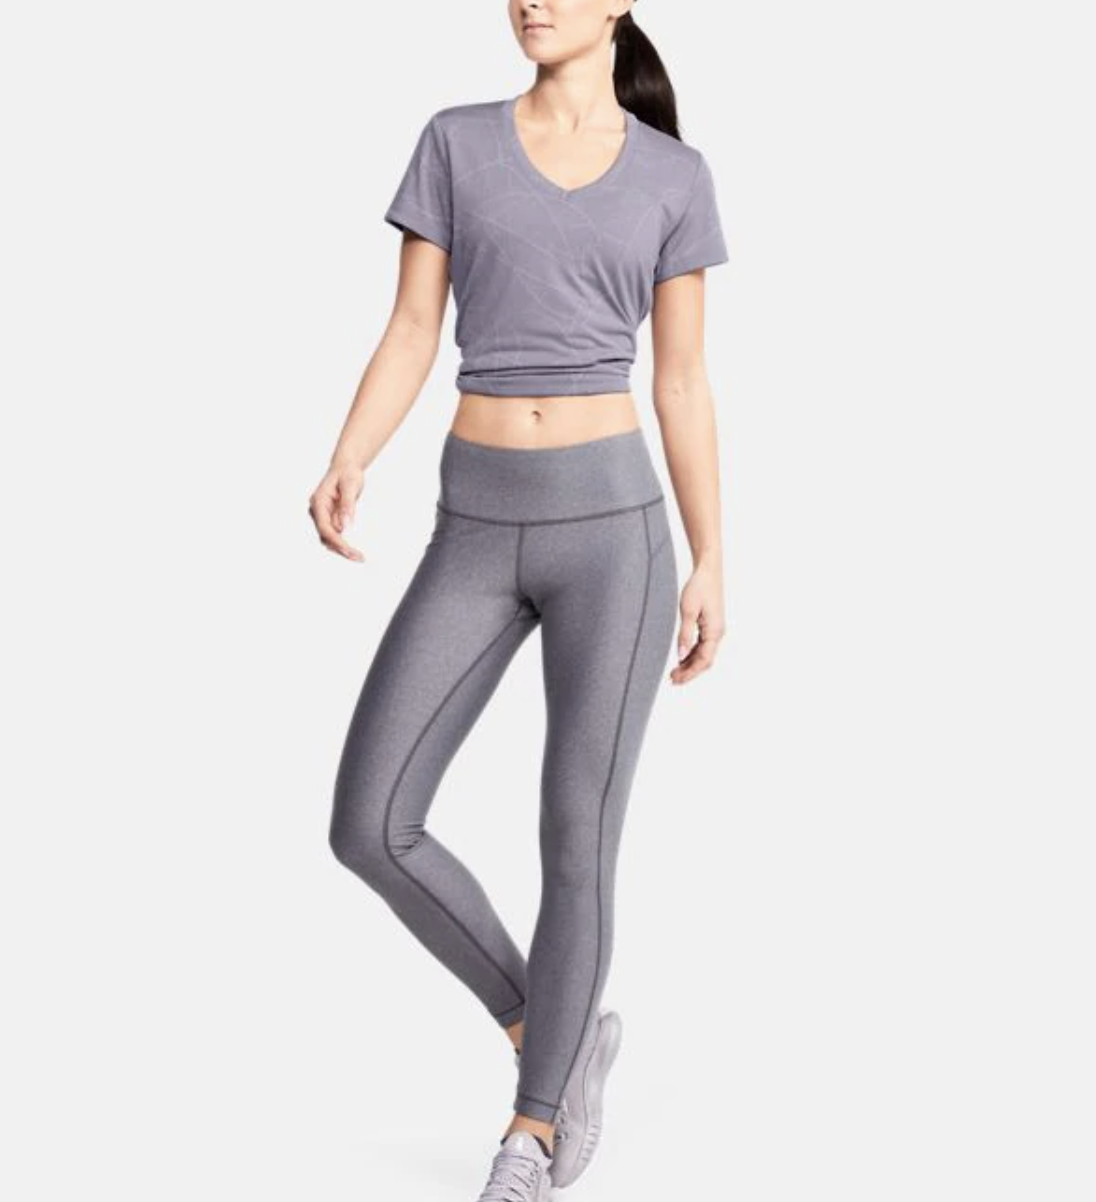 An Under Armour model wears a purple jacquard T-shirt with gray leggings